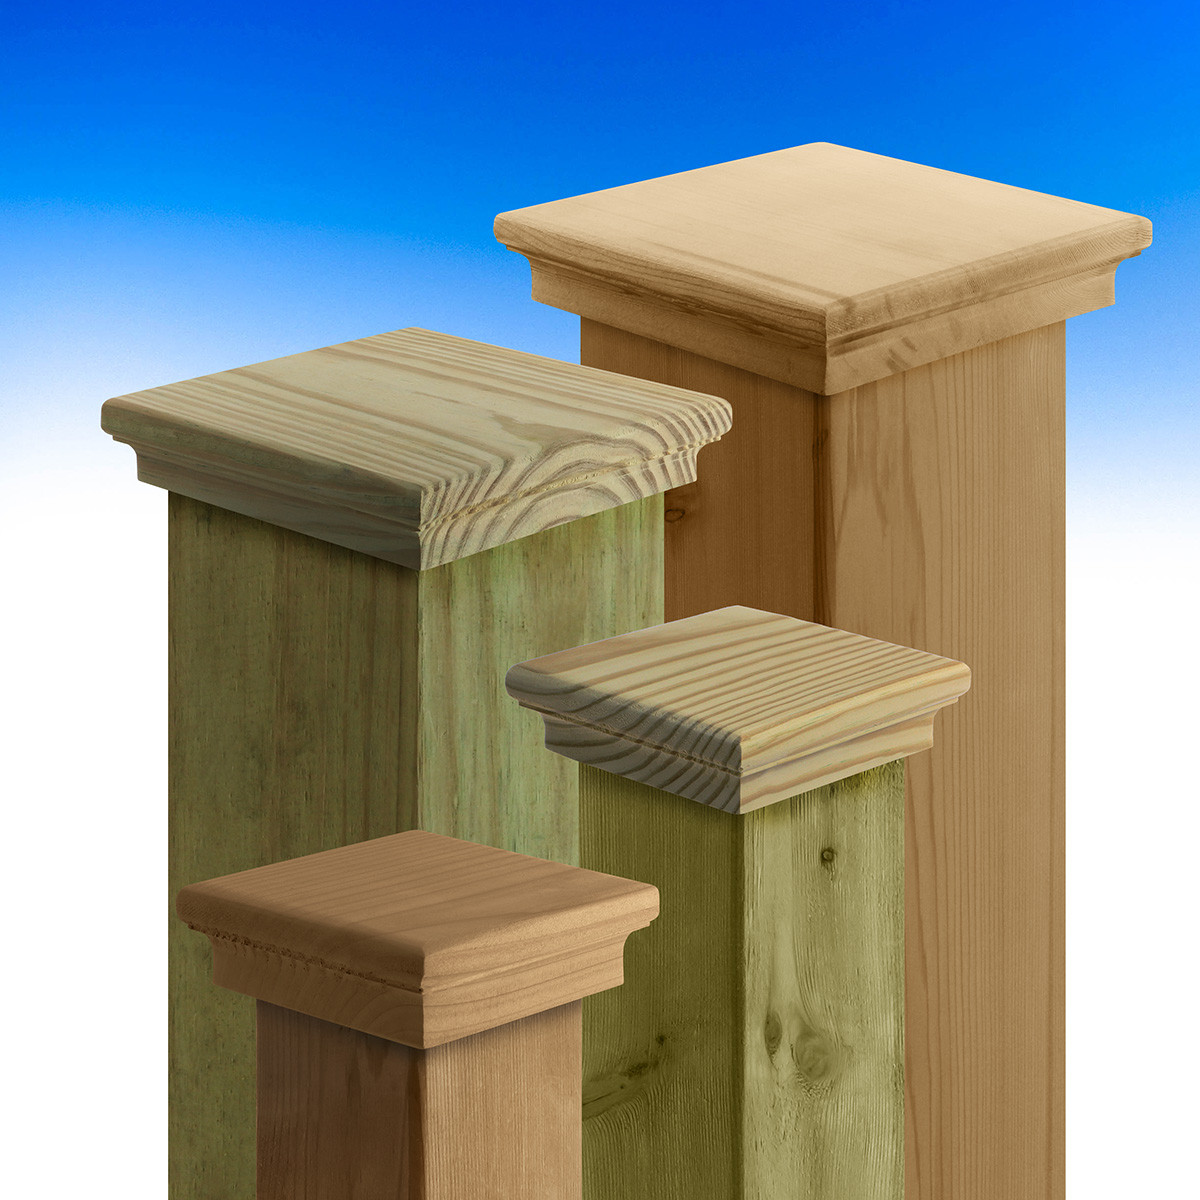 Boulevard Demi-Top Post Caps by Acorn - Cedar and Pressure Treated Pine - 3-5/8 inch and 5-5/8 inch